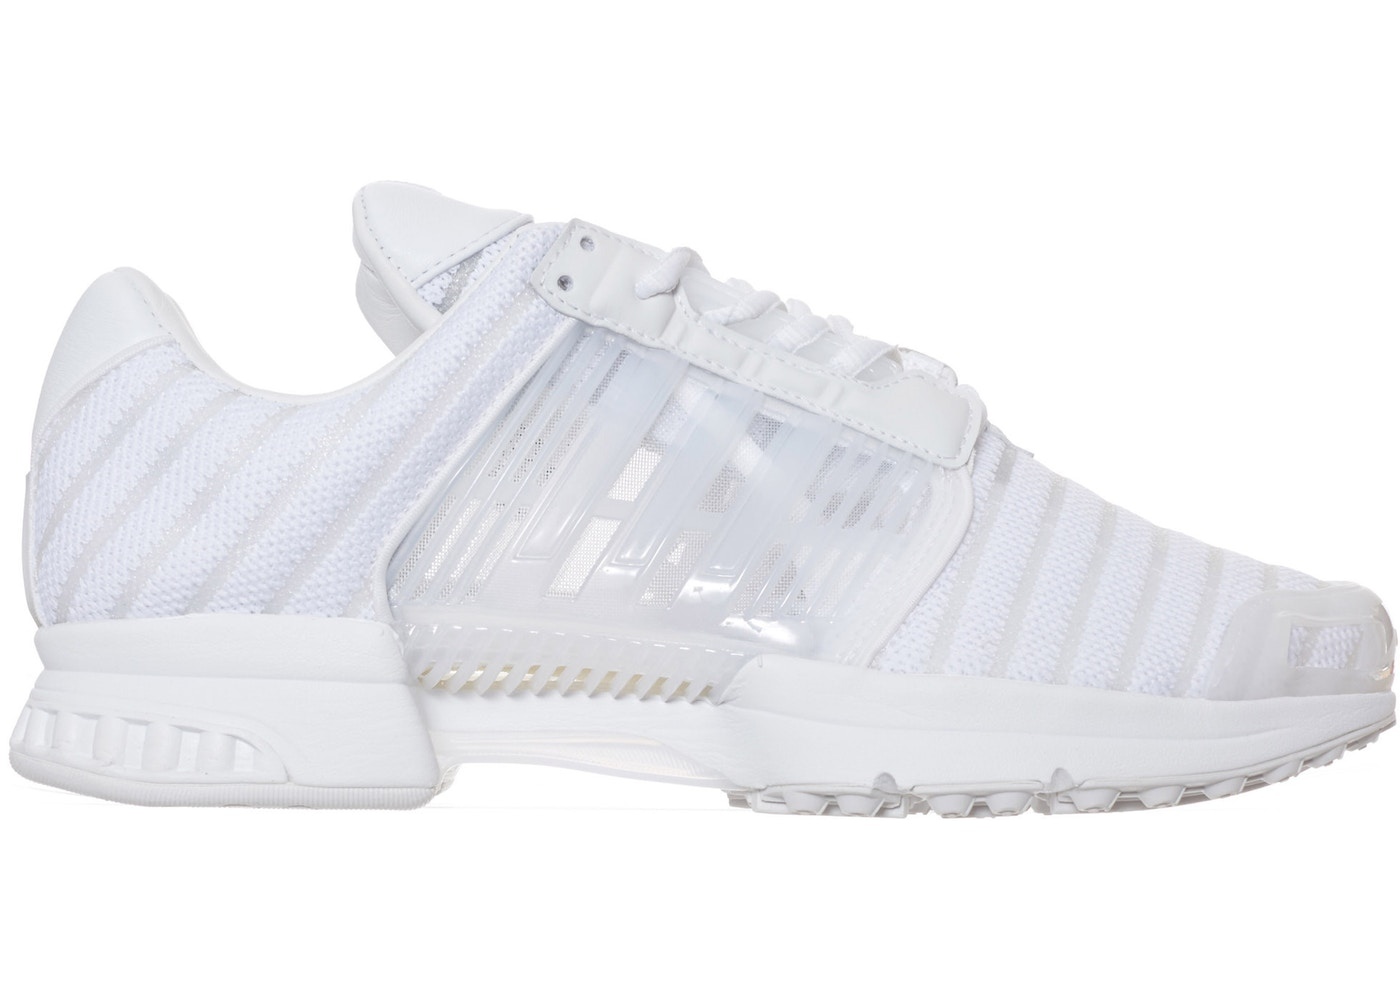 a05fe60948326 adidas Climacool Wish Sneakerboy Jellyfish - BY3053